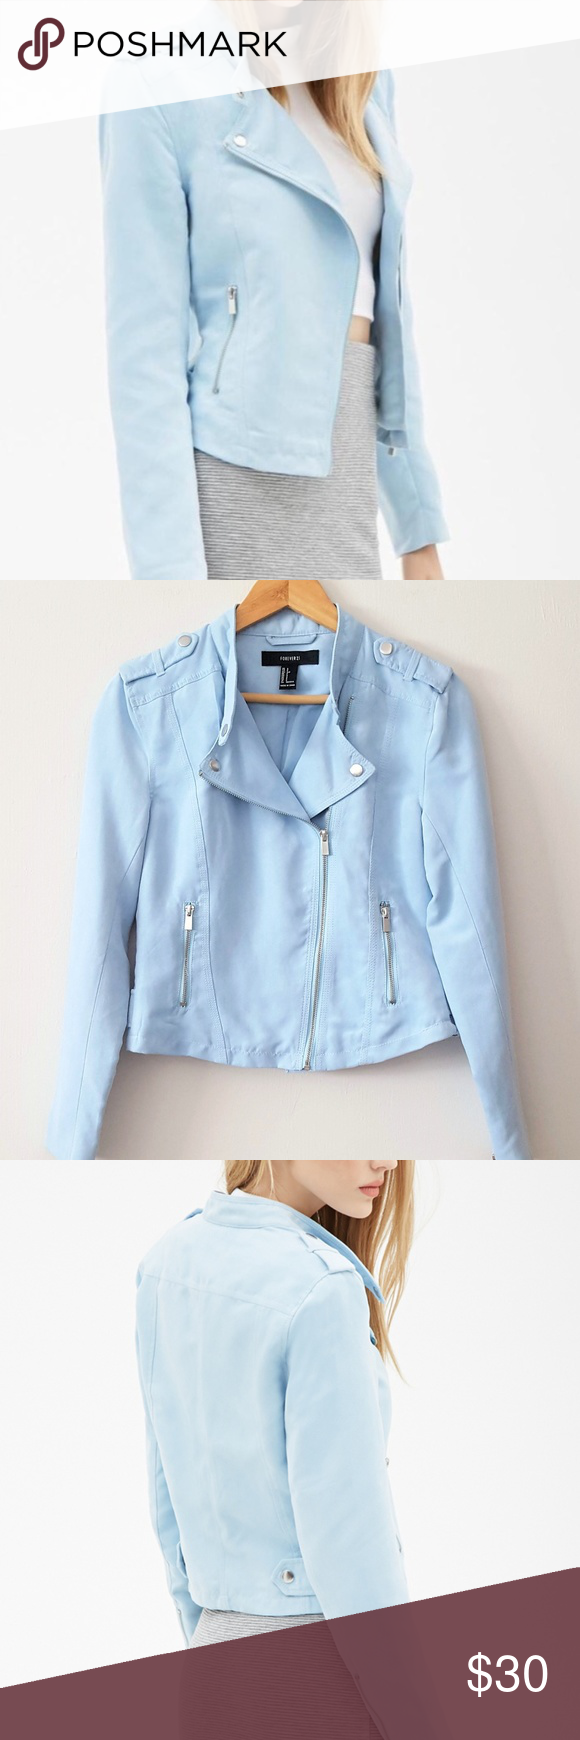 20a40d839 Nwot forever 21 baby blue faux suede moto jacket